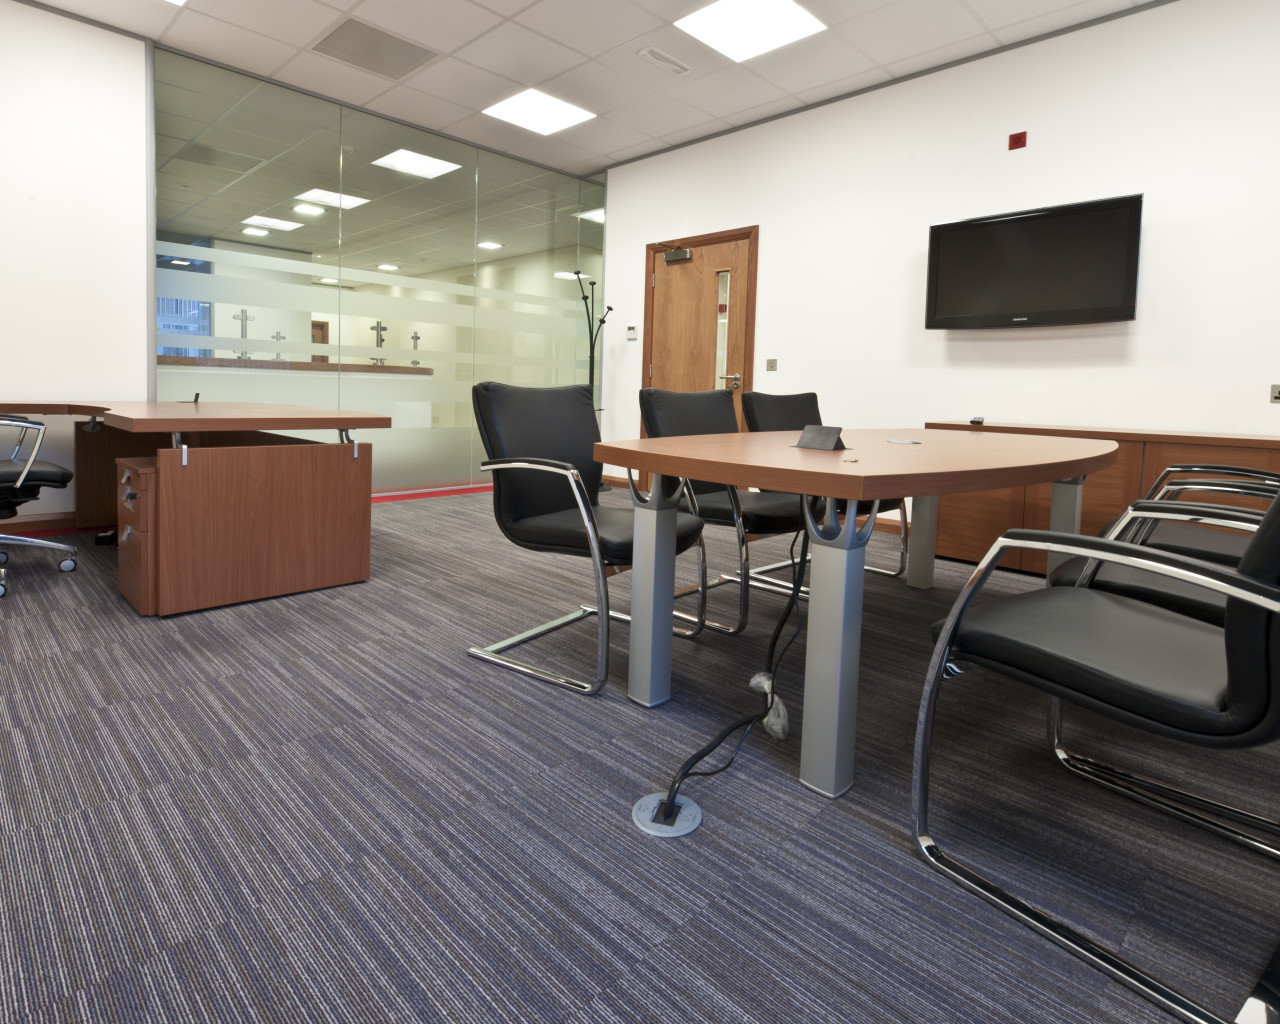 Commercial office refurbishment, Bolton, Manchester, Cheshire, Lancashire, Liverpool, Leeds, UK